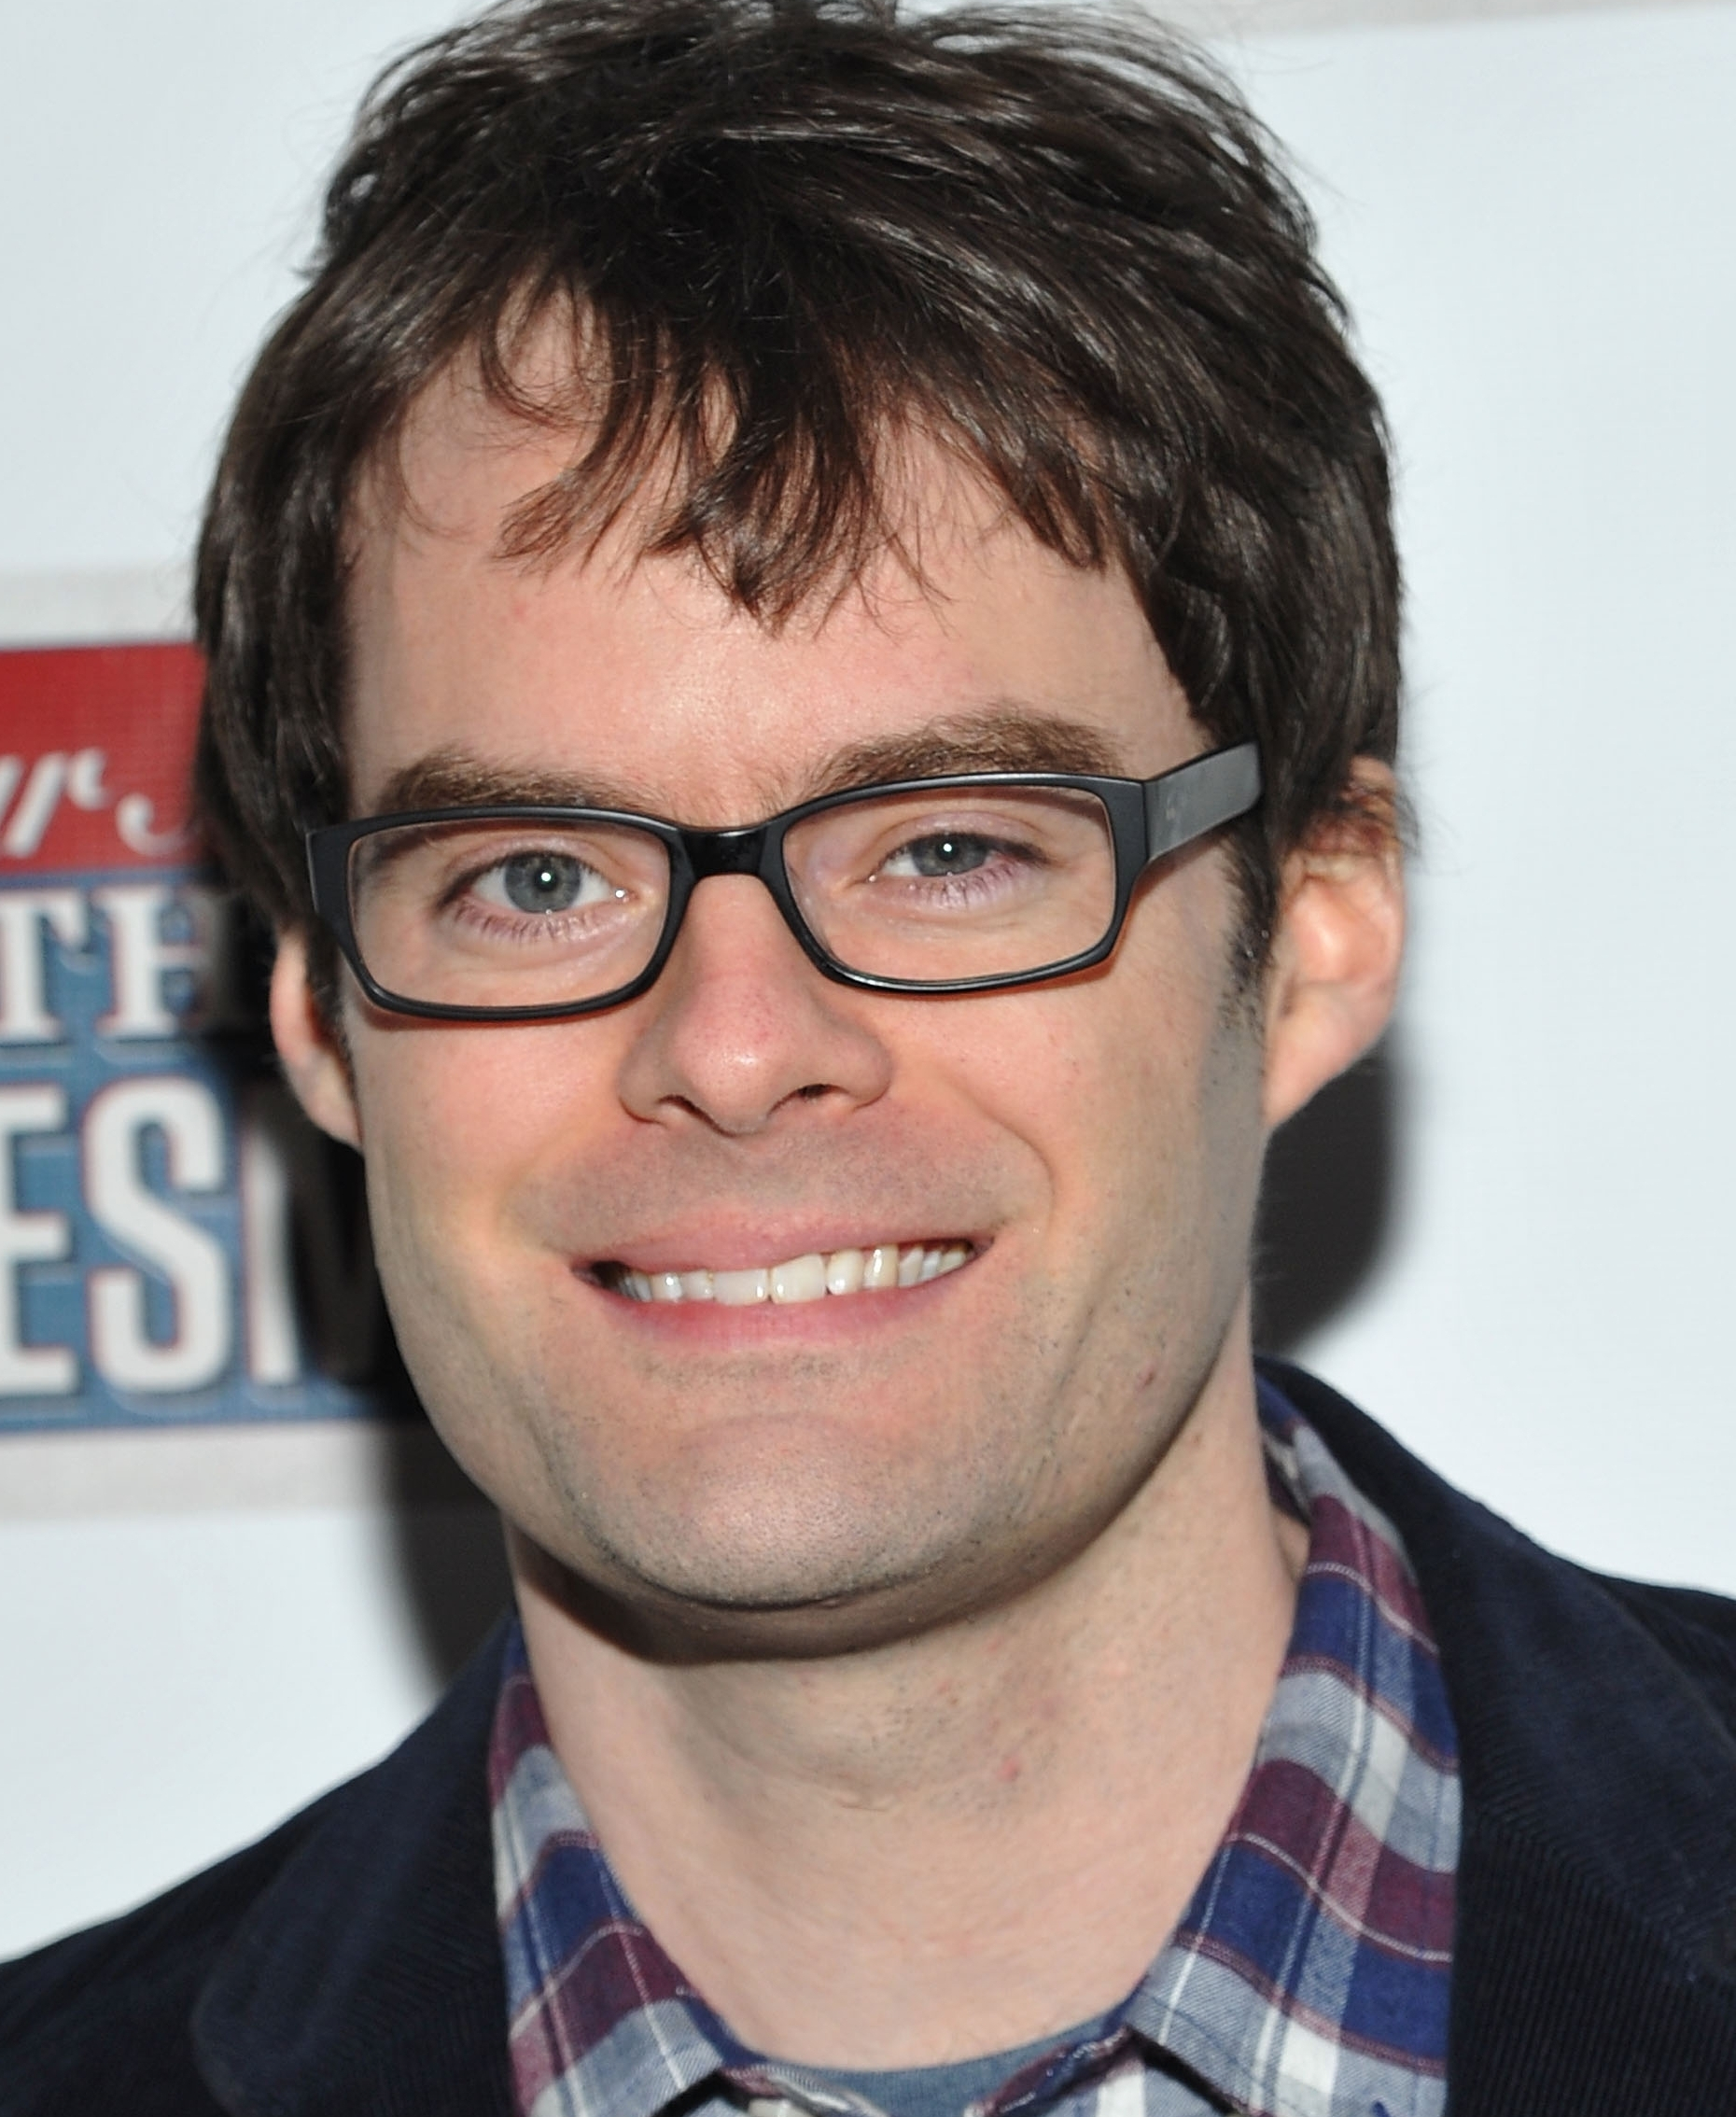 Bill Hader On Sketch Comedy, Classic Hollywood